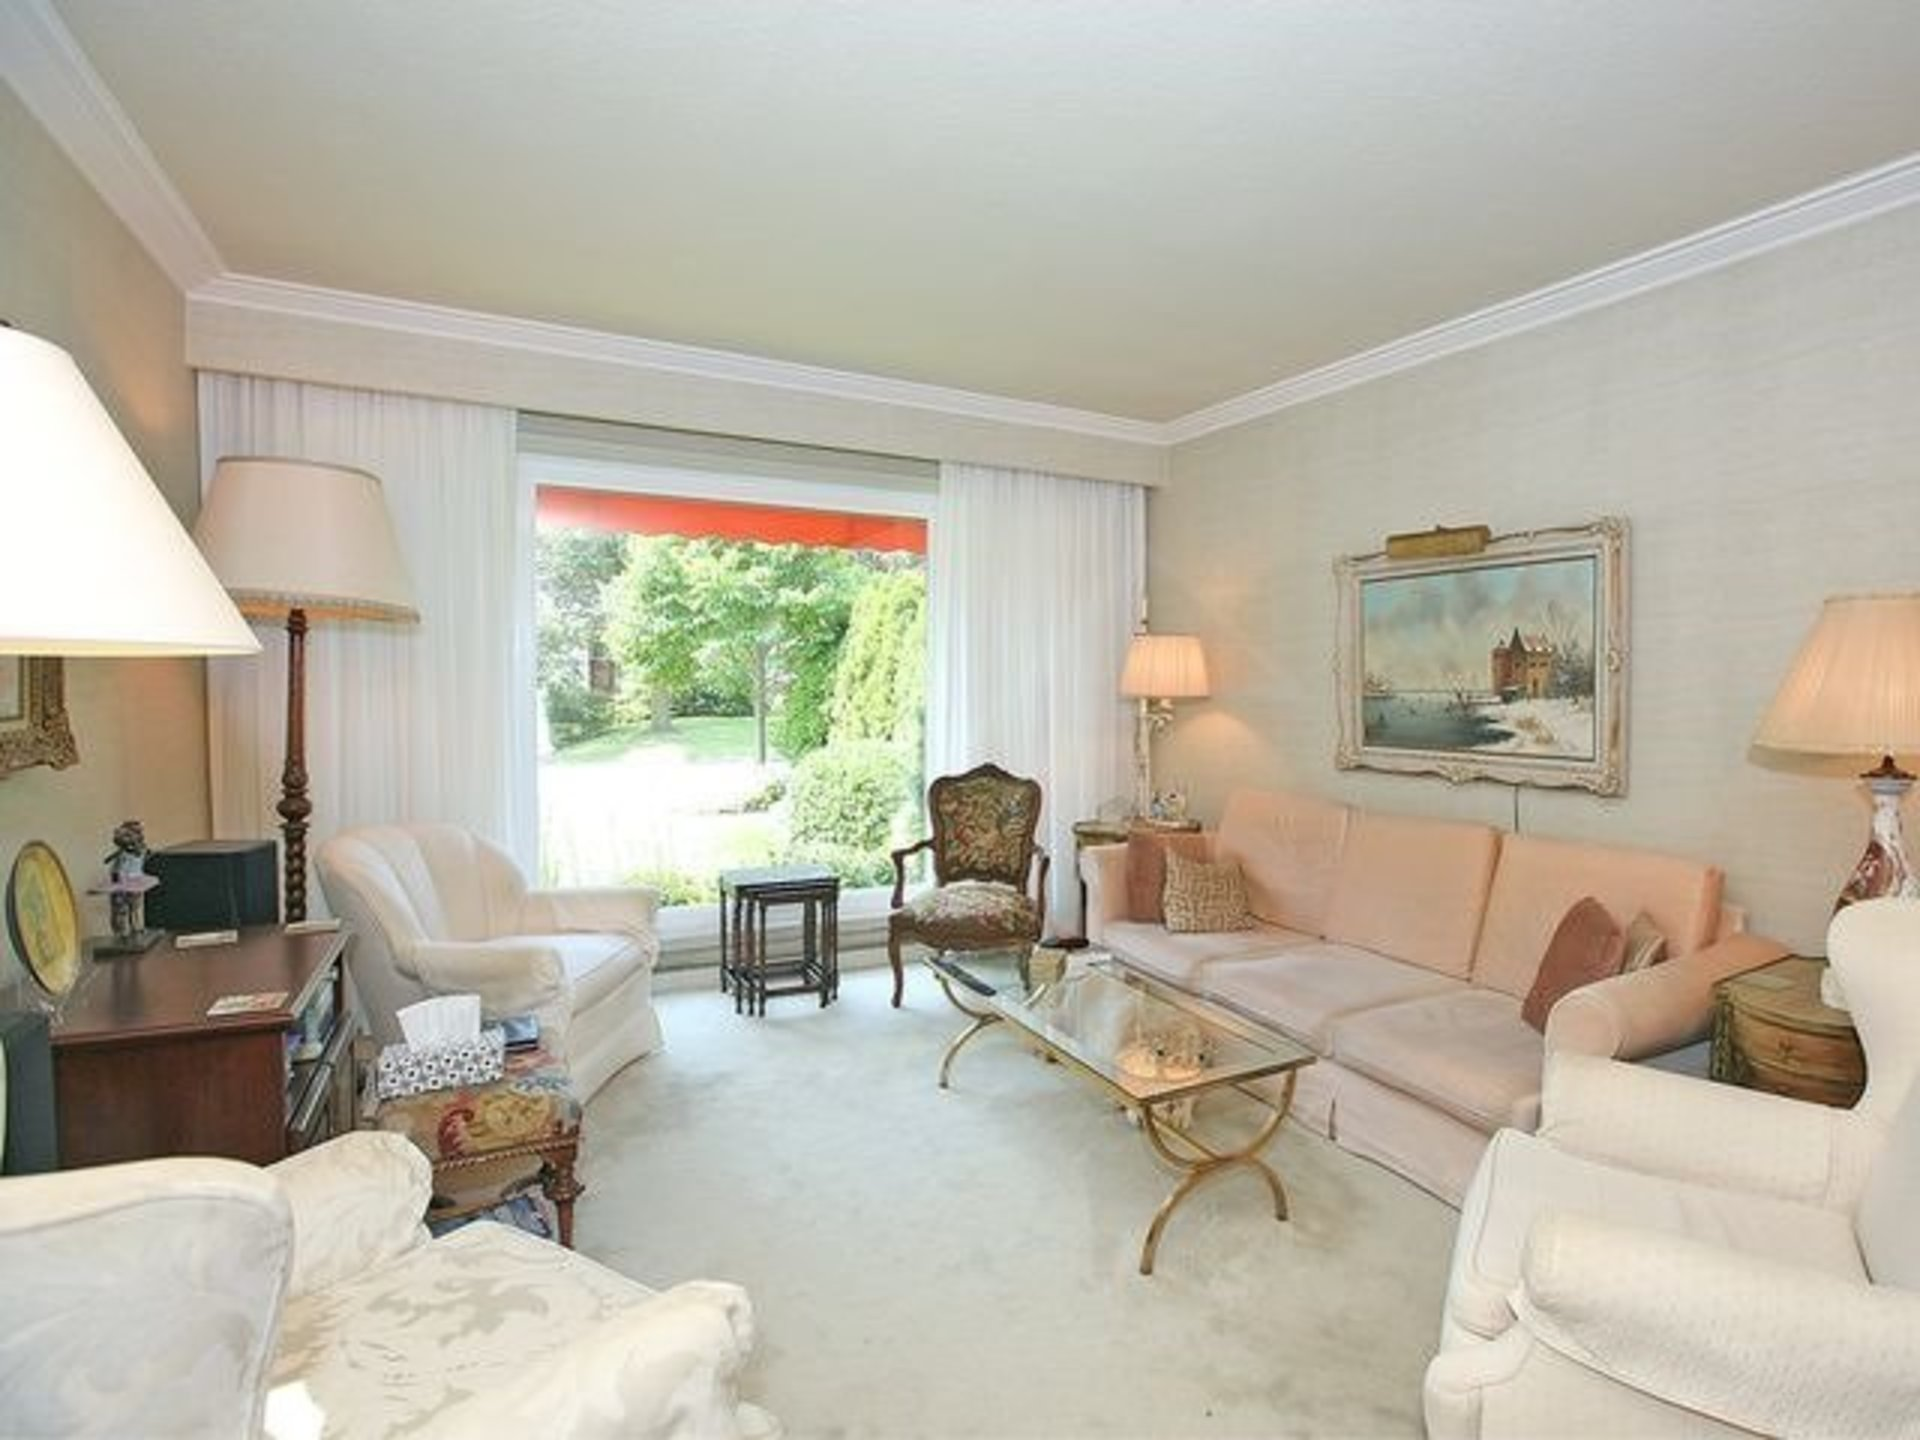 33 at SALE # 461 - 32 Canary Crescent, Bayview Village, Toronto